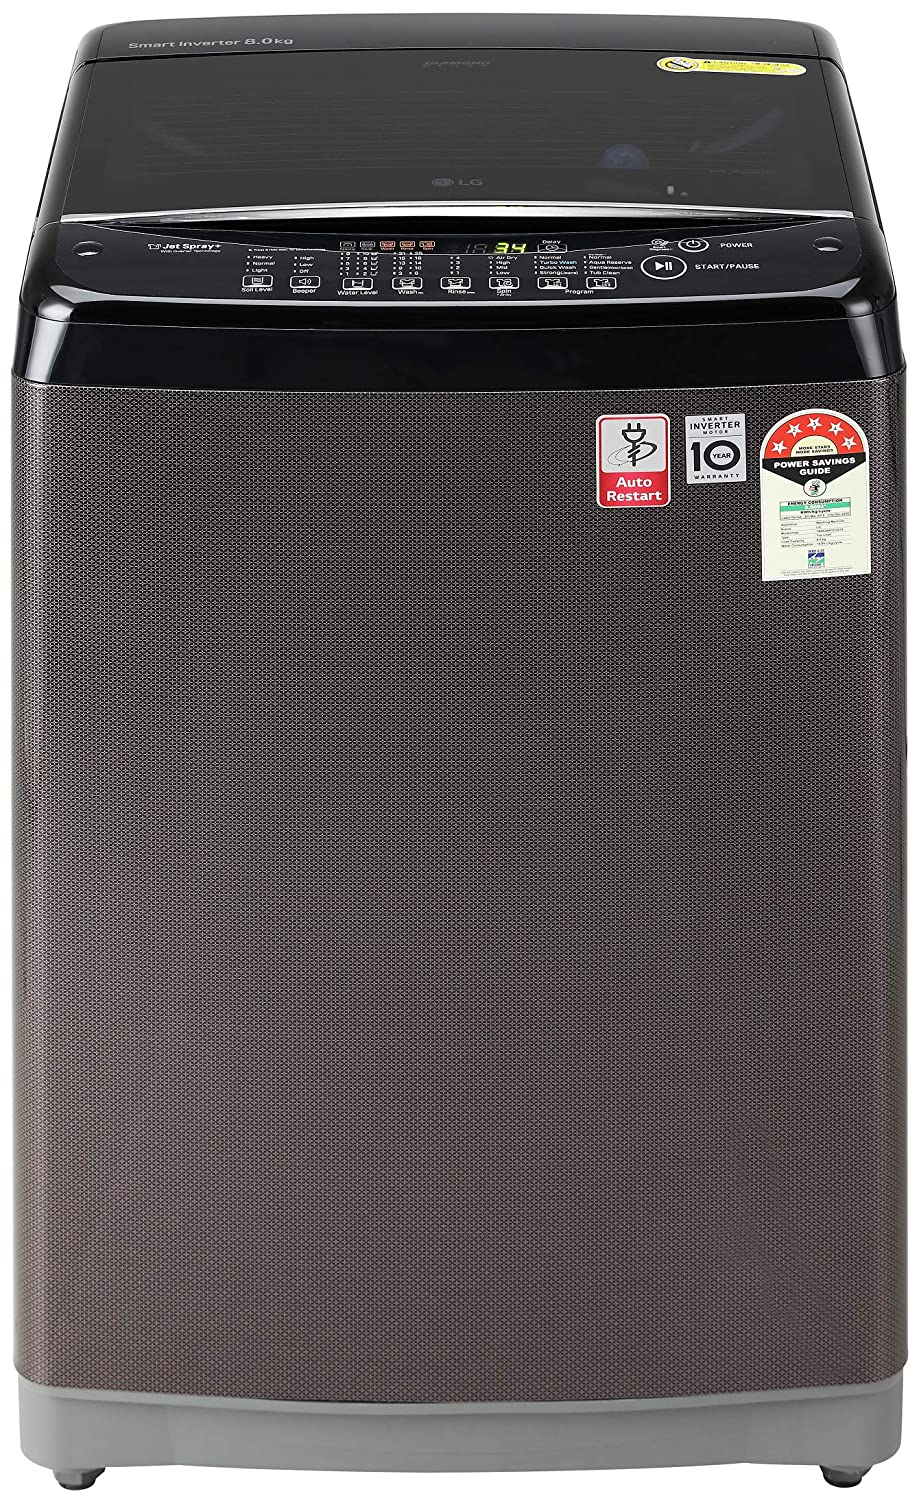 Best Washing Machine In India – Fully Automatic (Top Load & Front Load)